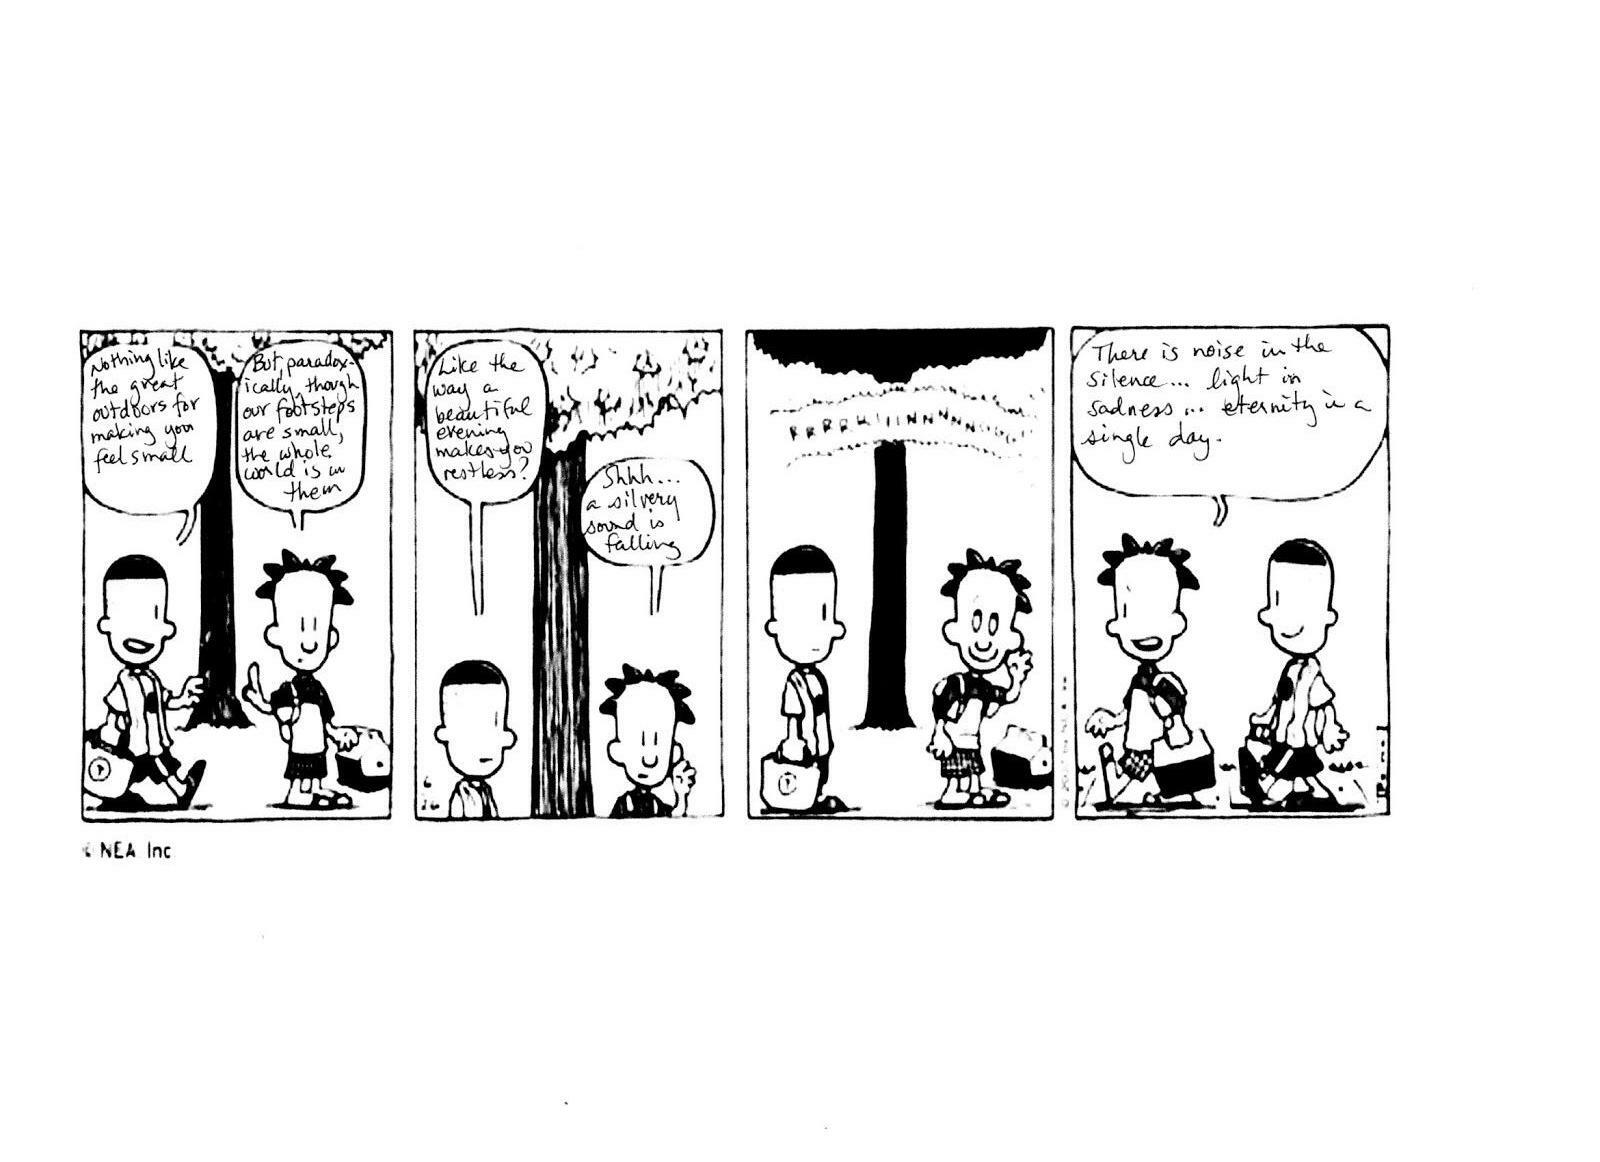 """<p>Image description: comic strip blankof two characters (A and B) talking while walking in the woods; text: A: <span class=""""push-double""""></span><span class=""""pull-double"""">""""</span>Nothing like the great outdoors for making you feel small."""" B: <span class=""""push-double""""></span><span class=""""pull-double"""">""""</span>But paradoxically though our footsteps are small, the whole world is in them."""" A: <span class=""""push-double""""></span><span class=""""pull-double"""">""""</span>Like the way a&nbsp;beautiful eternity makes you restless?"""" B: <span class=""""push-double""""></span><span class=""""pull-double"""">""""</span>Shhhh a&nbsp;silvery sound is falling."""" A: <span class=""""push-double""""></span><span class=""""pull-double"""">""""</span>There is noise in silence… light in sadness… eternity in a&nbsp;single&nbsp;day.""""</p>"""